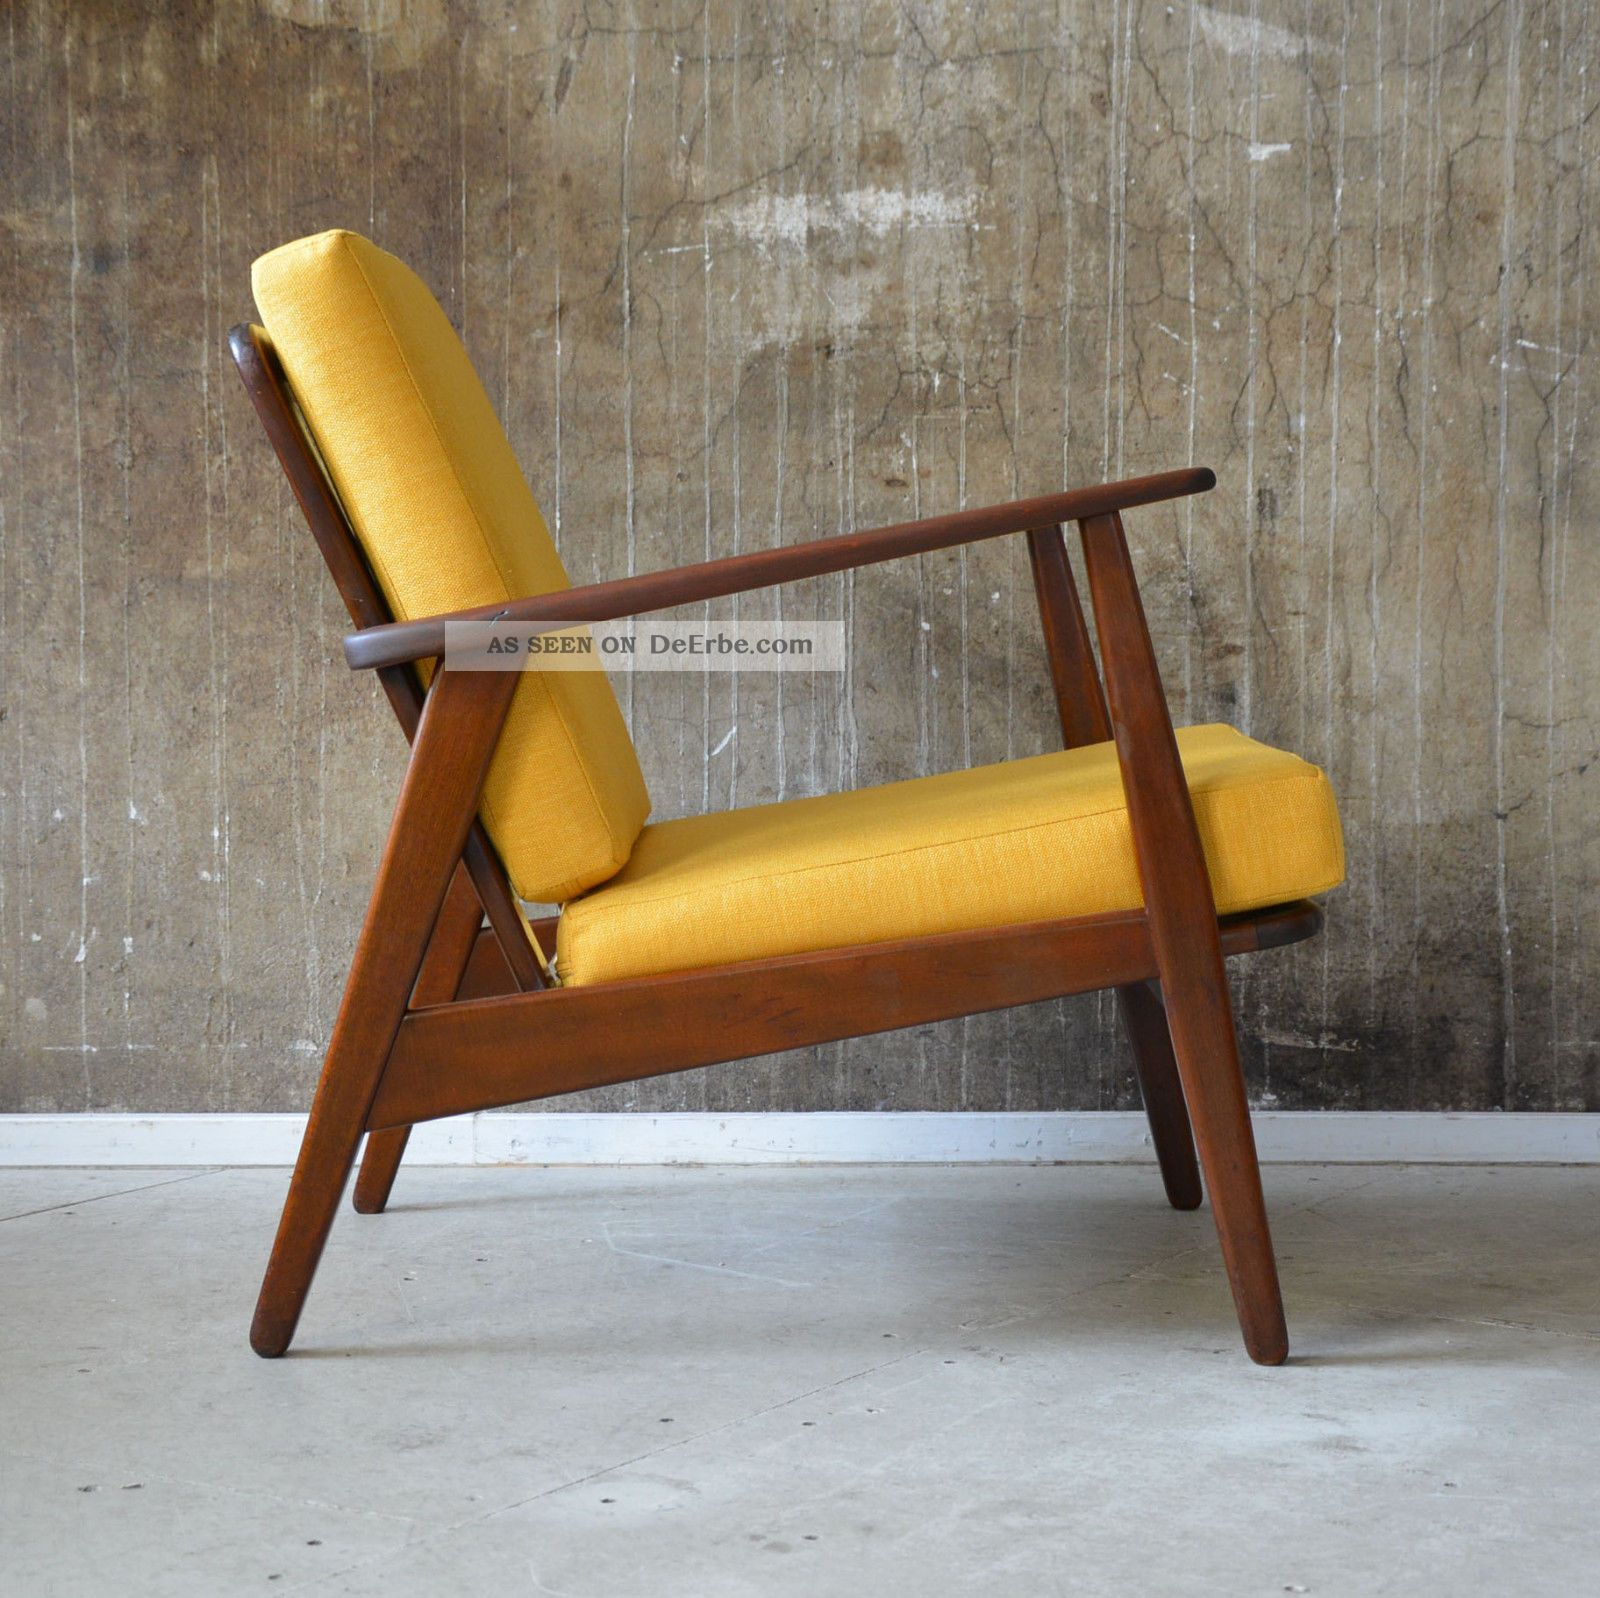 Danish Design Couchtisch 60er Teak Sessel Danish Design 60s Easy Chair Vintage Midcentury